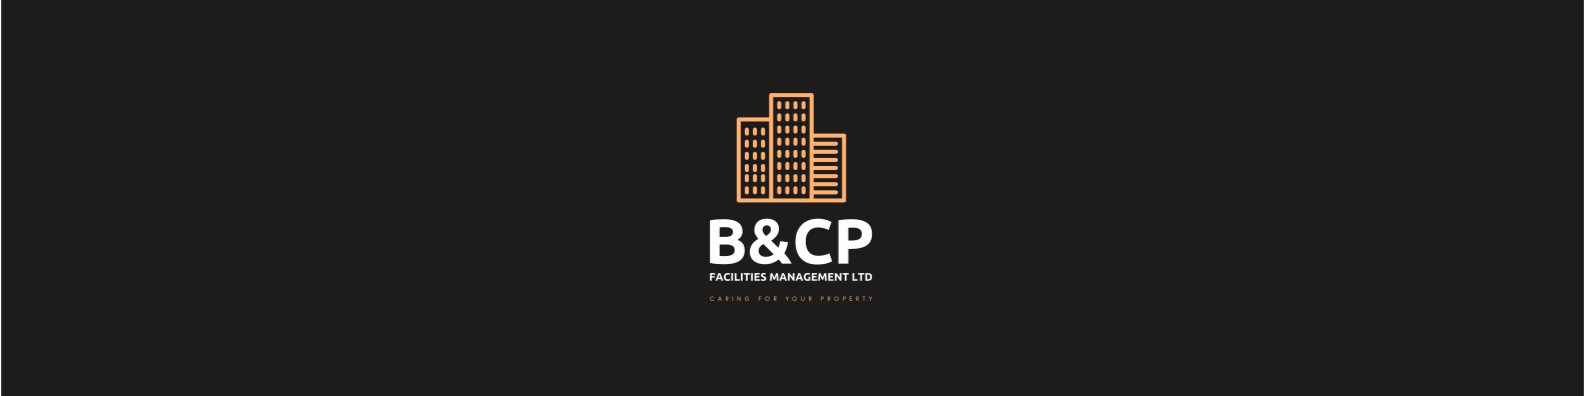 B&CP Facilities Management